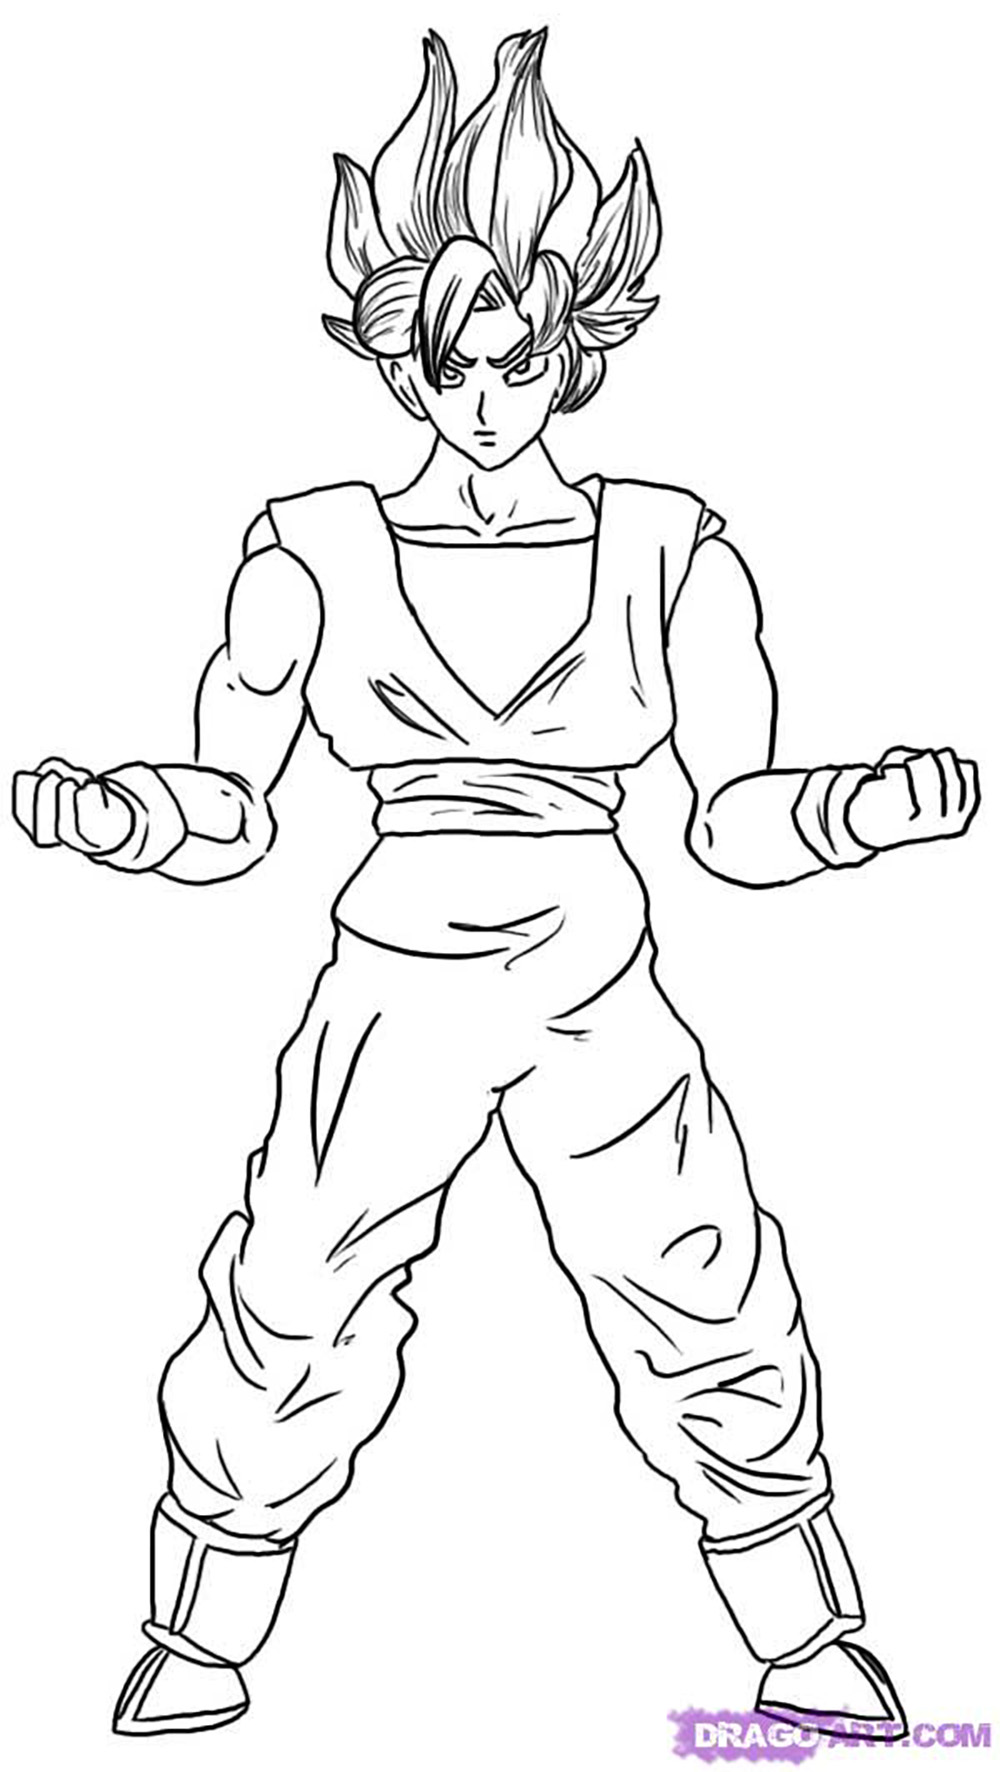 Simple Dragon Ball Z coloring page for kids : Songoku